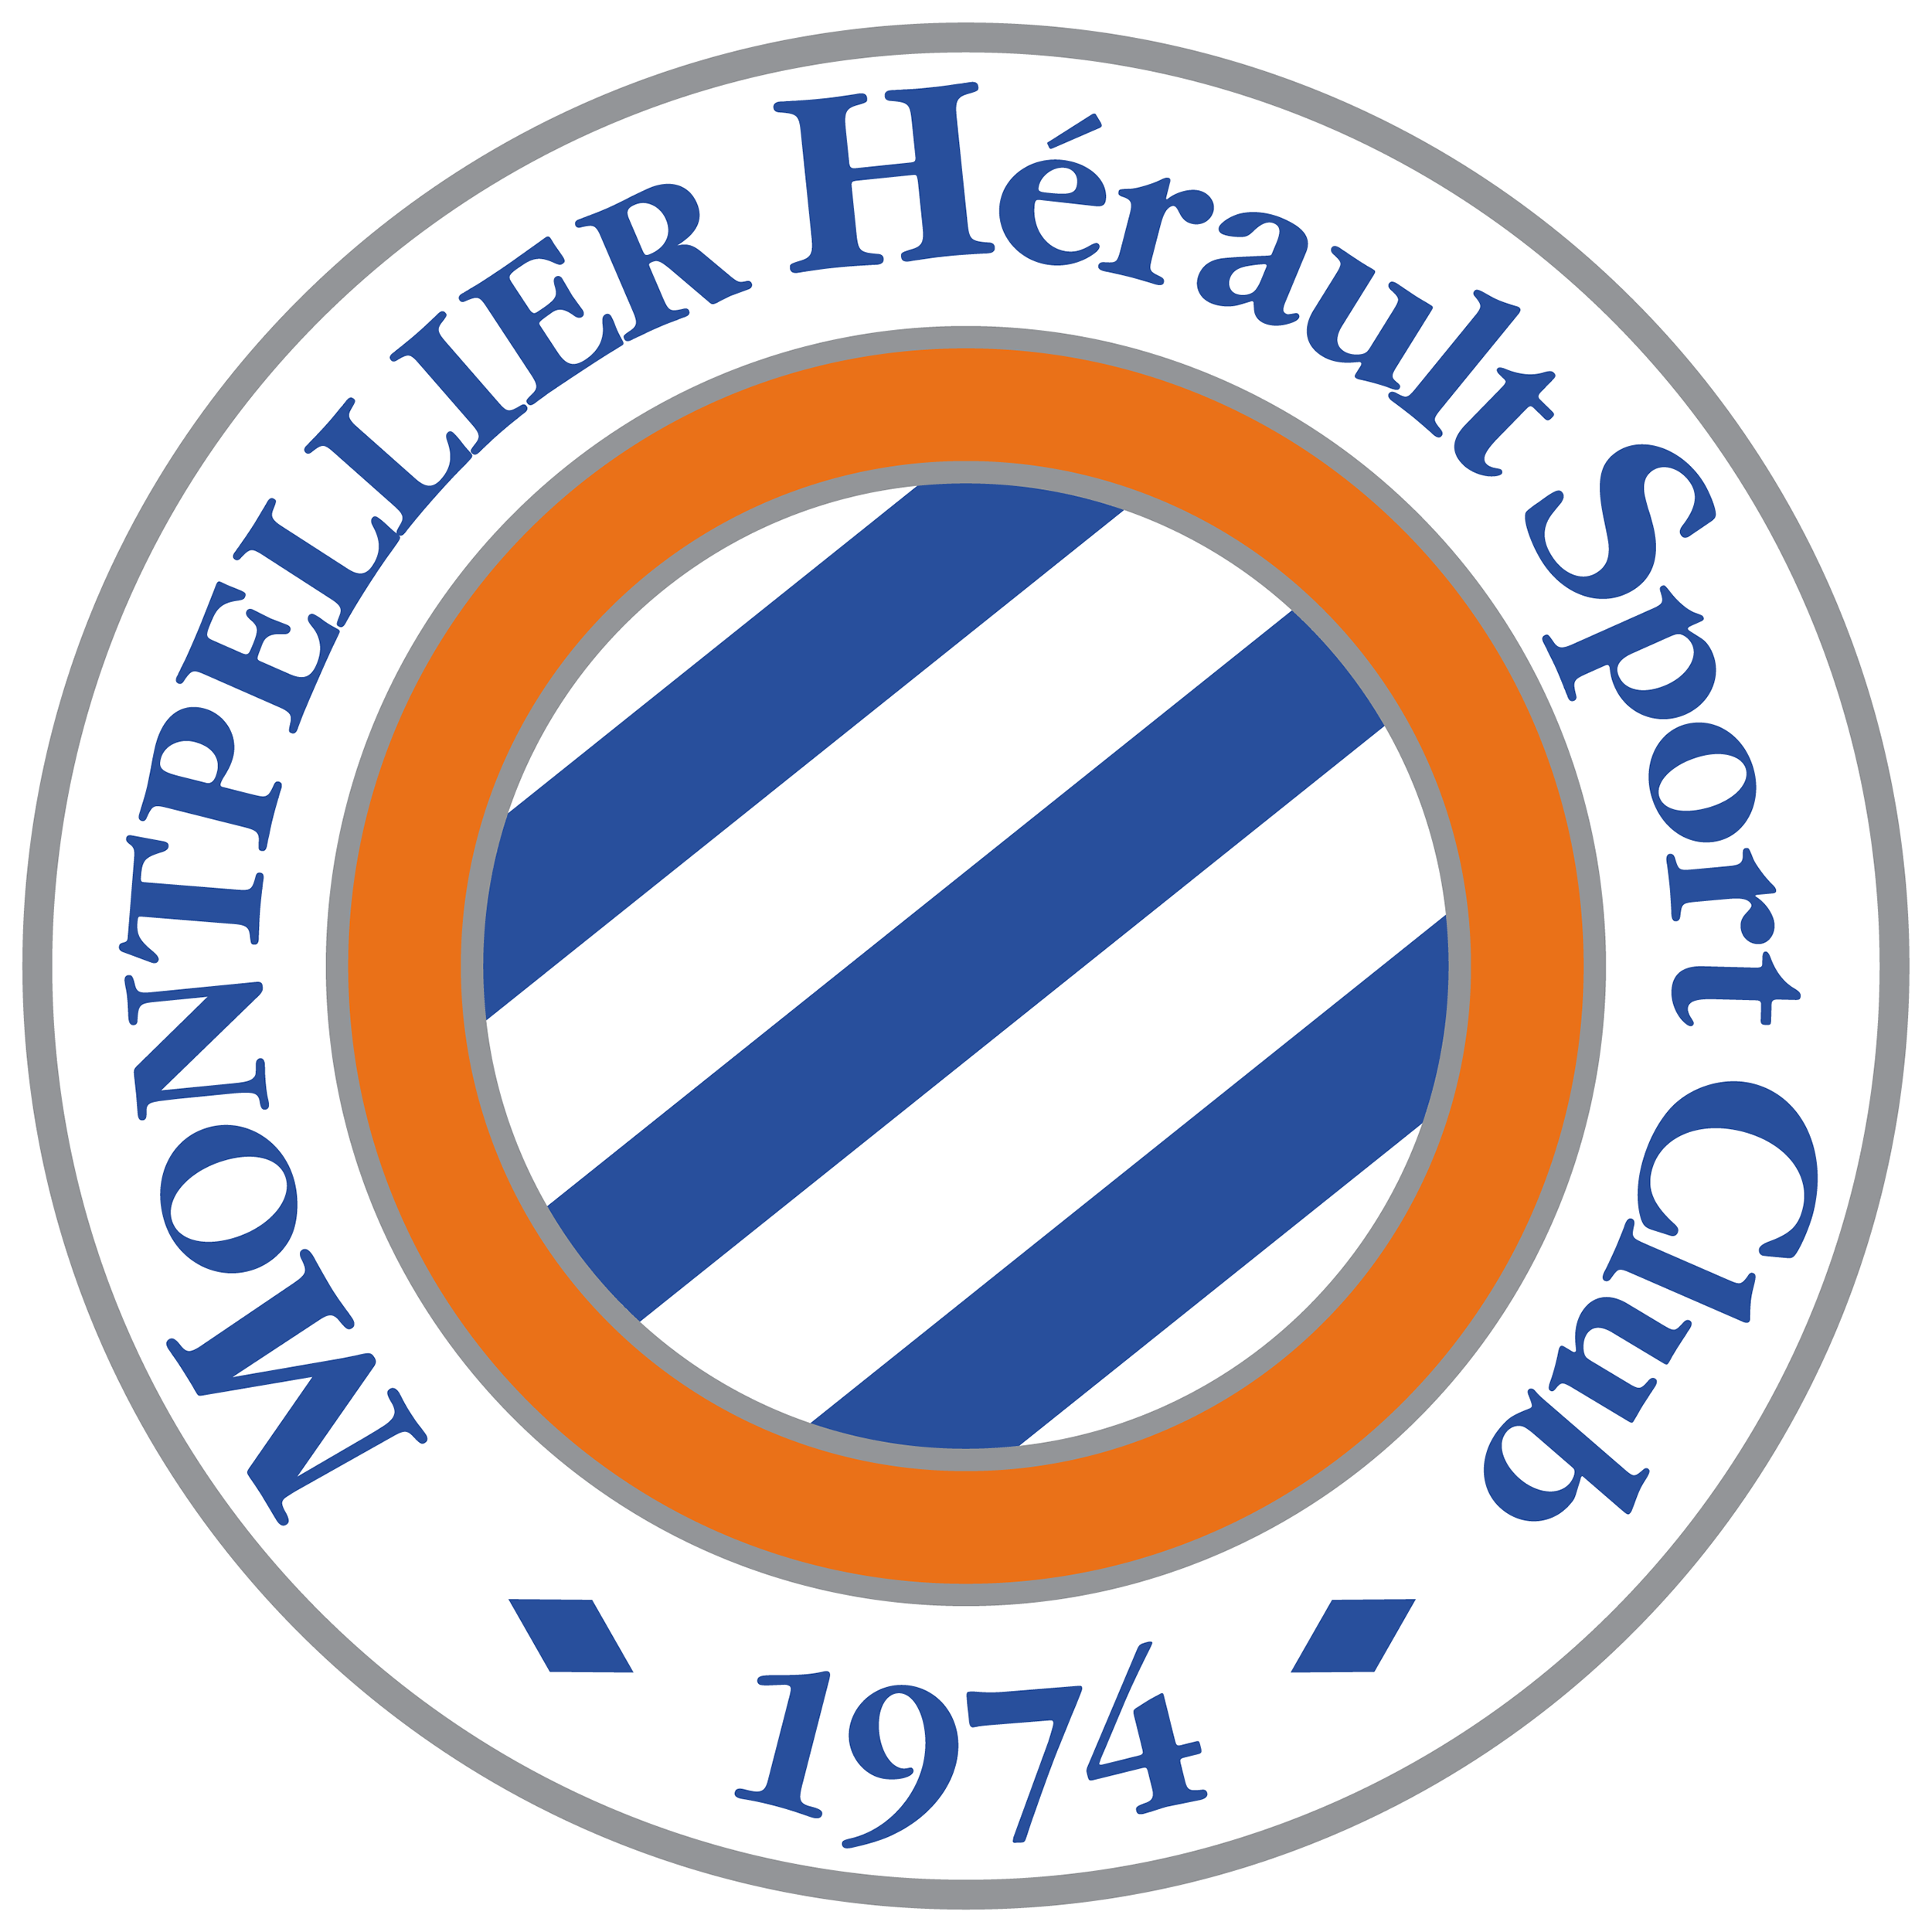 Montpellier team logo